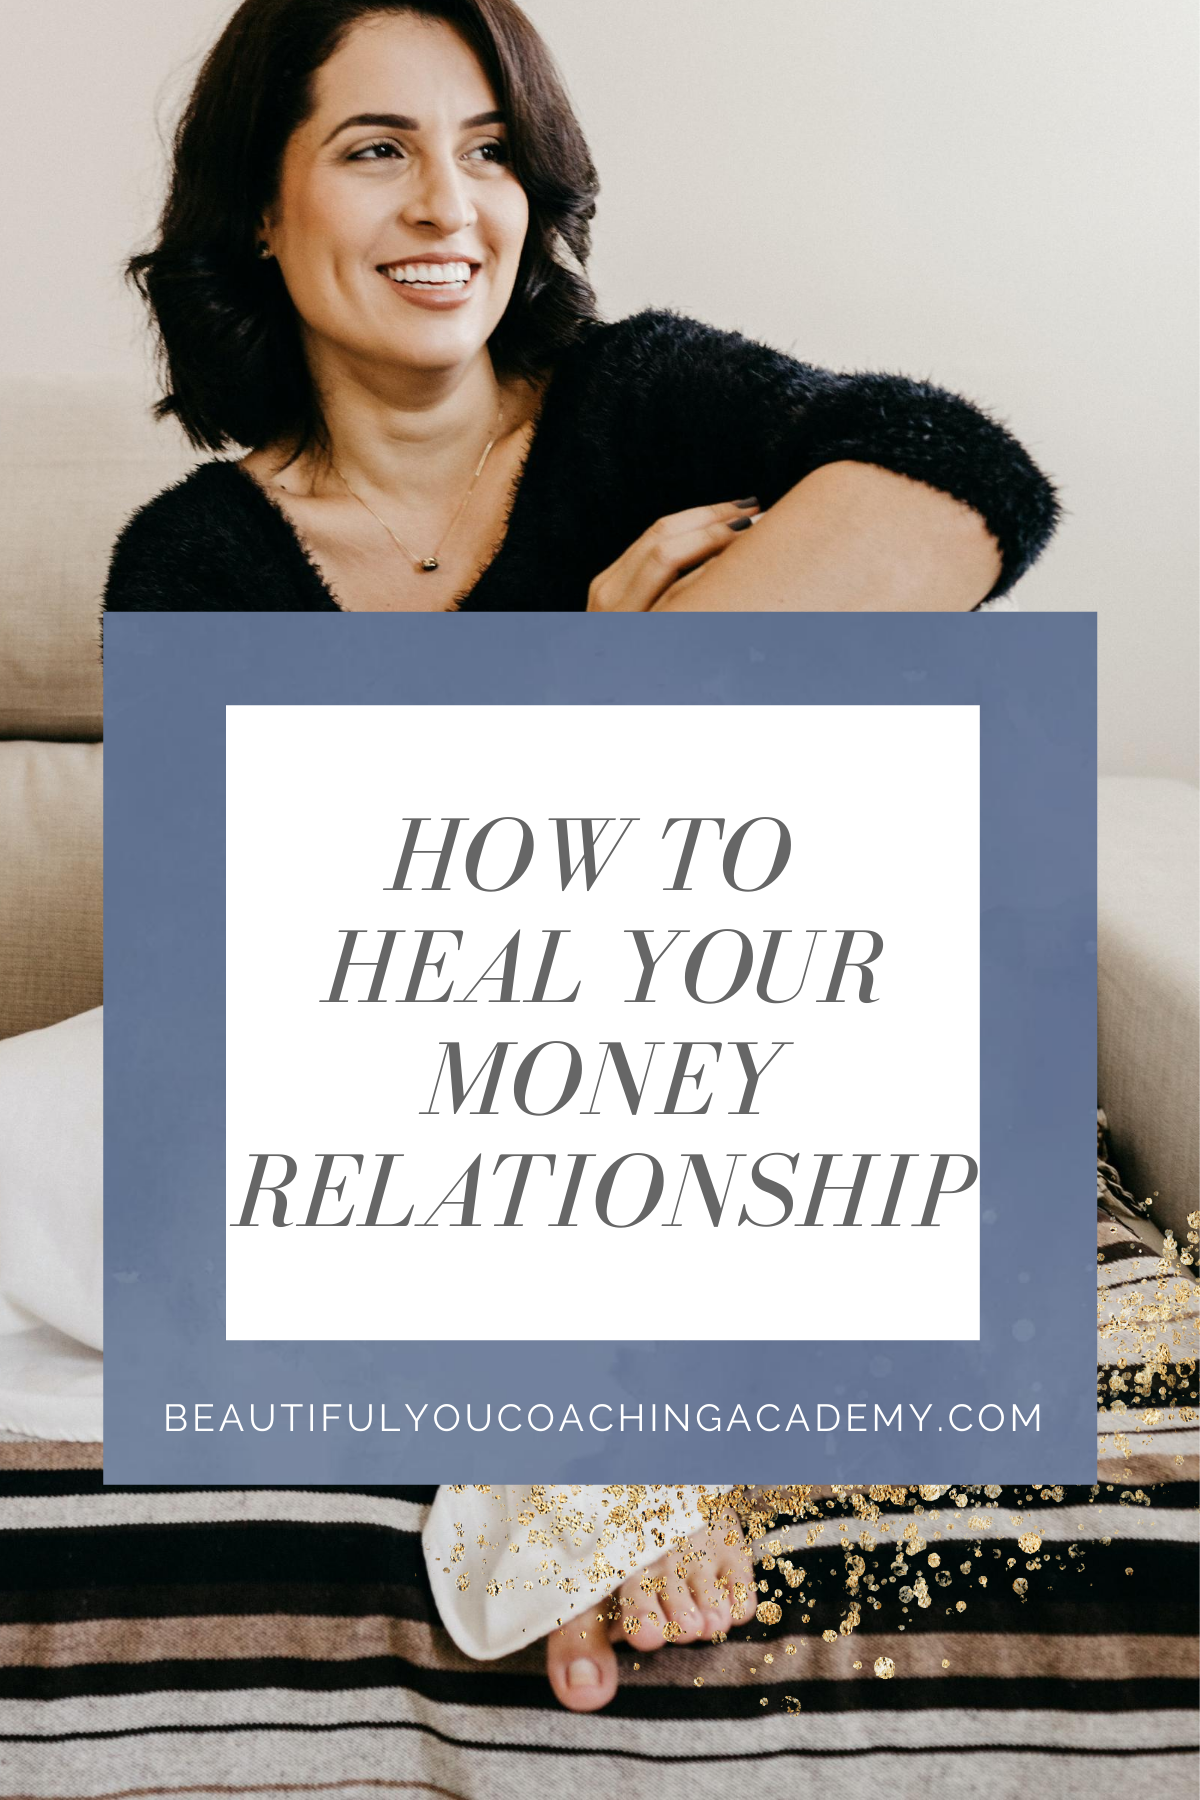 How To Heal Your Money Relationship: Resources for Coaches